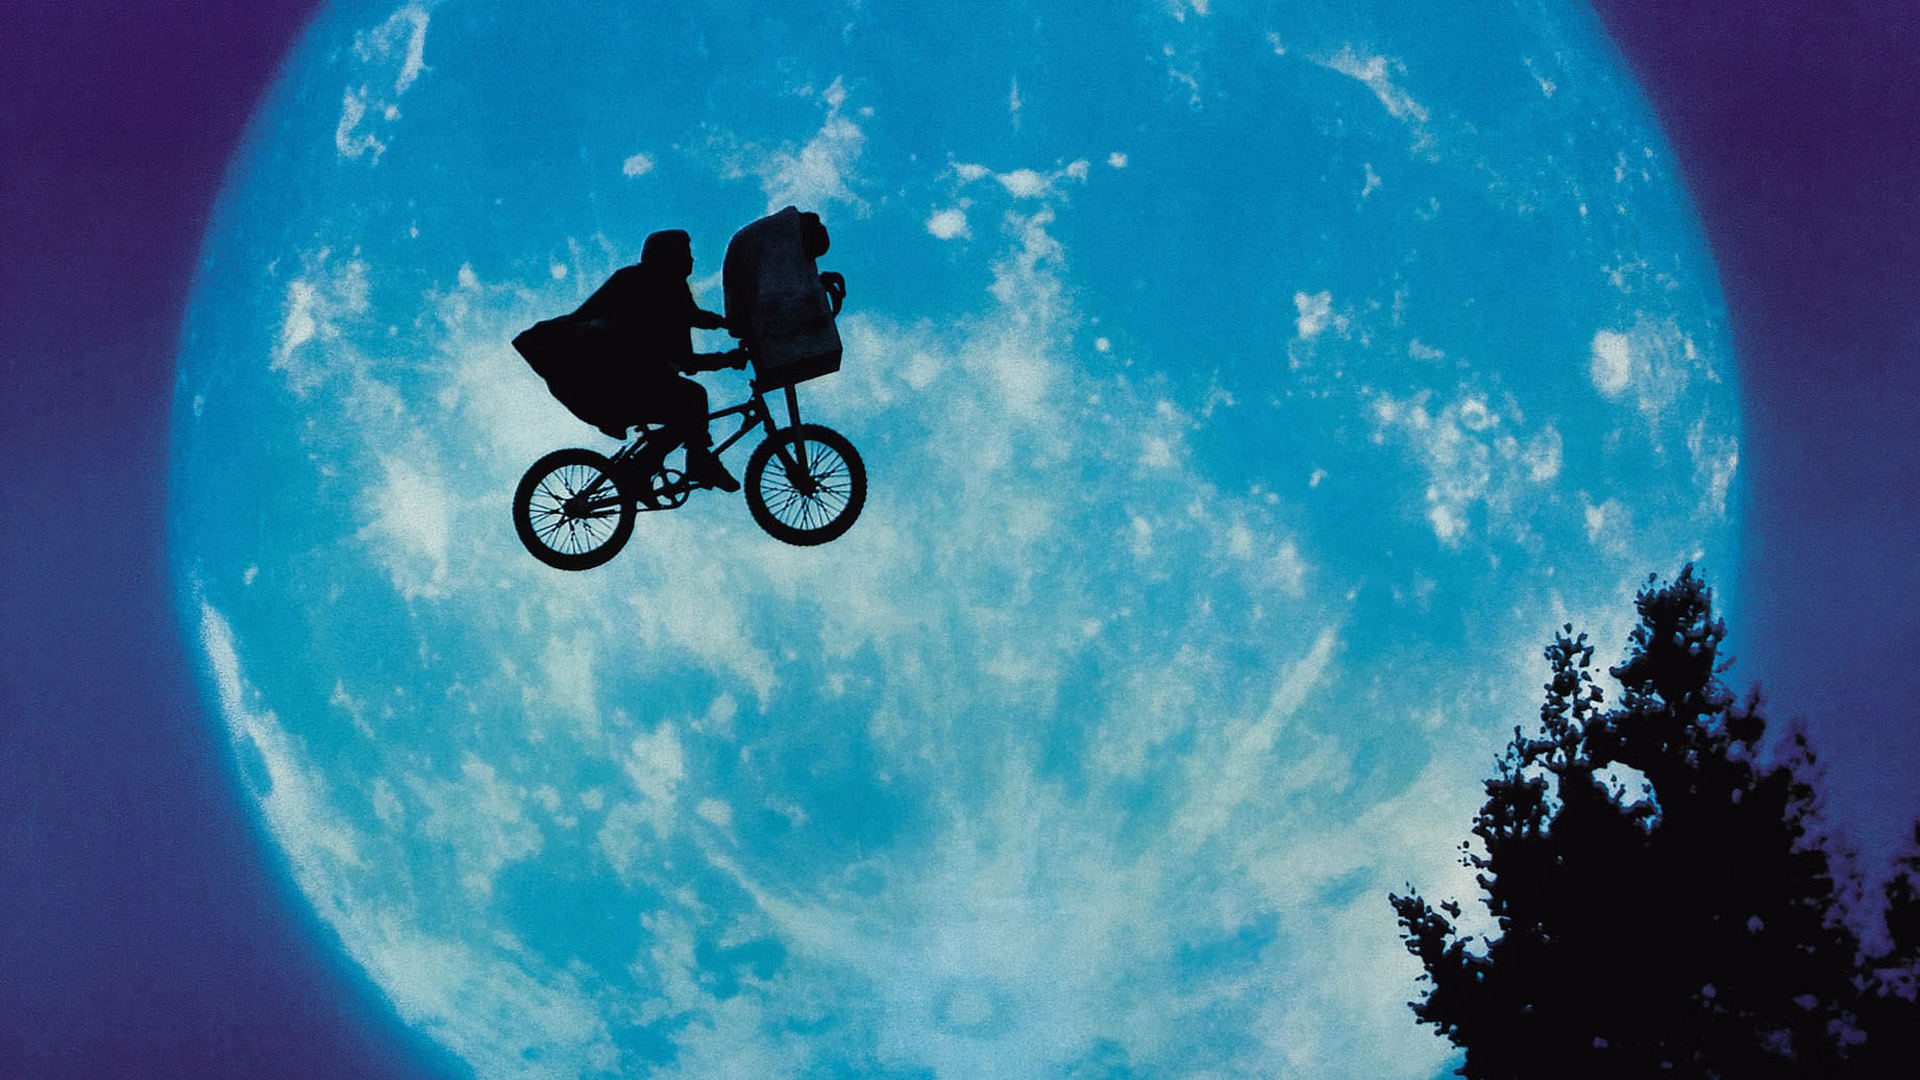 E.T. the Extra Terrestrial HD Wallpaper   Background Image ...